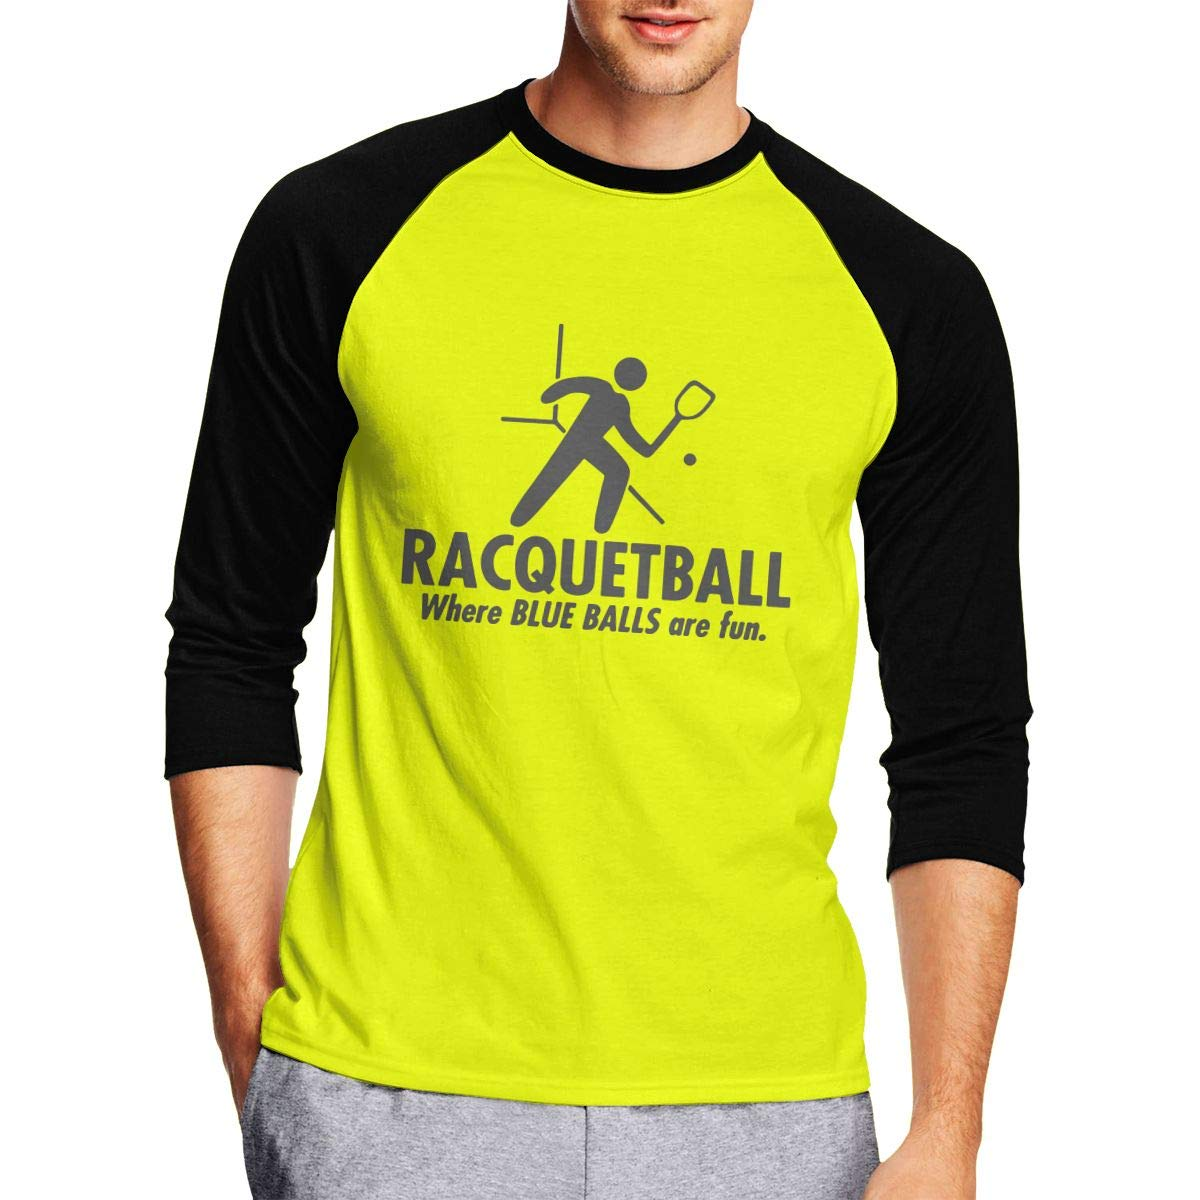 Raquetball Where Blue Balls Offensive Sarcasm Mens Casual Adult Long-Sleeved T-Shirts